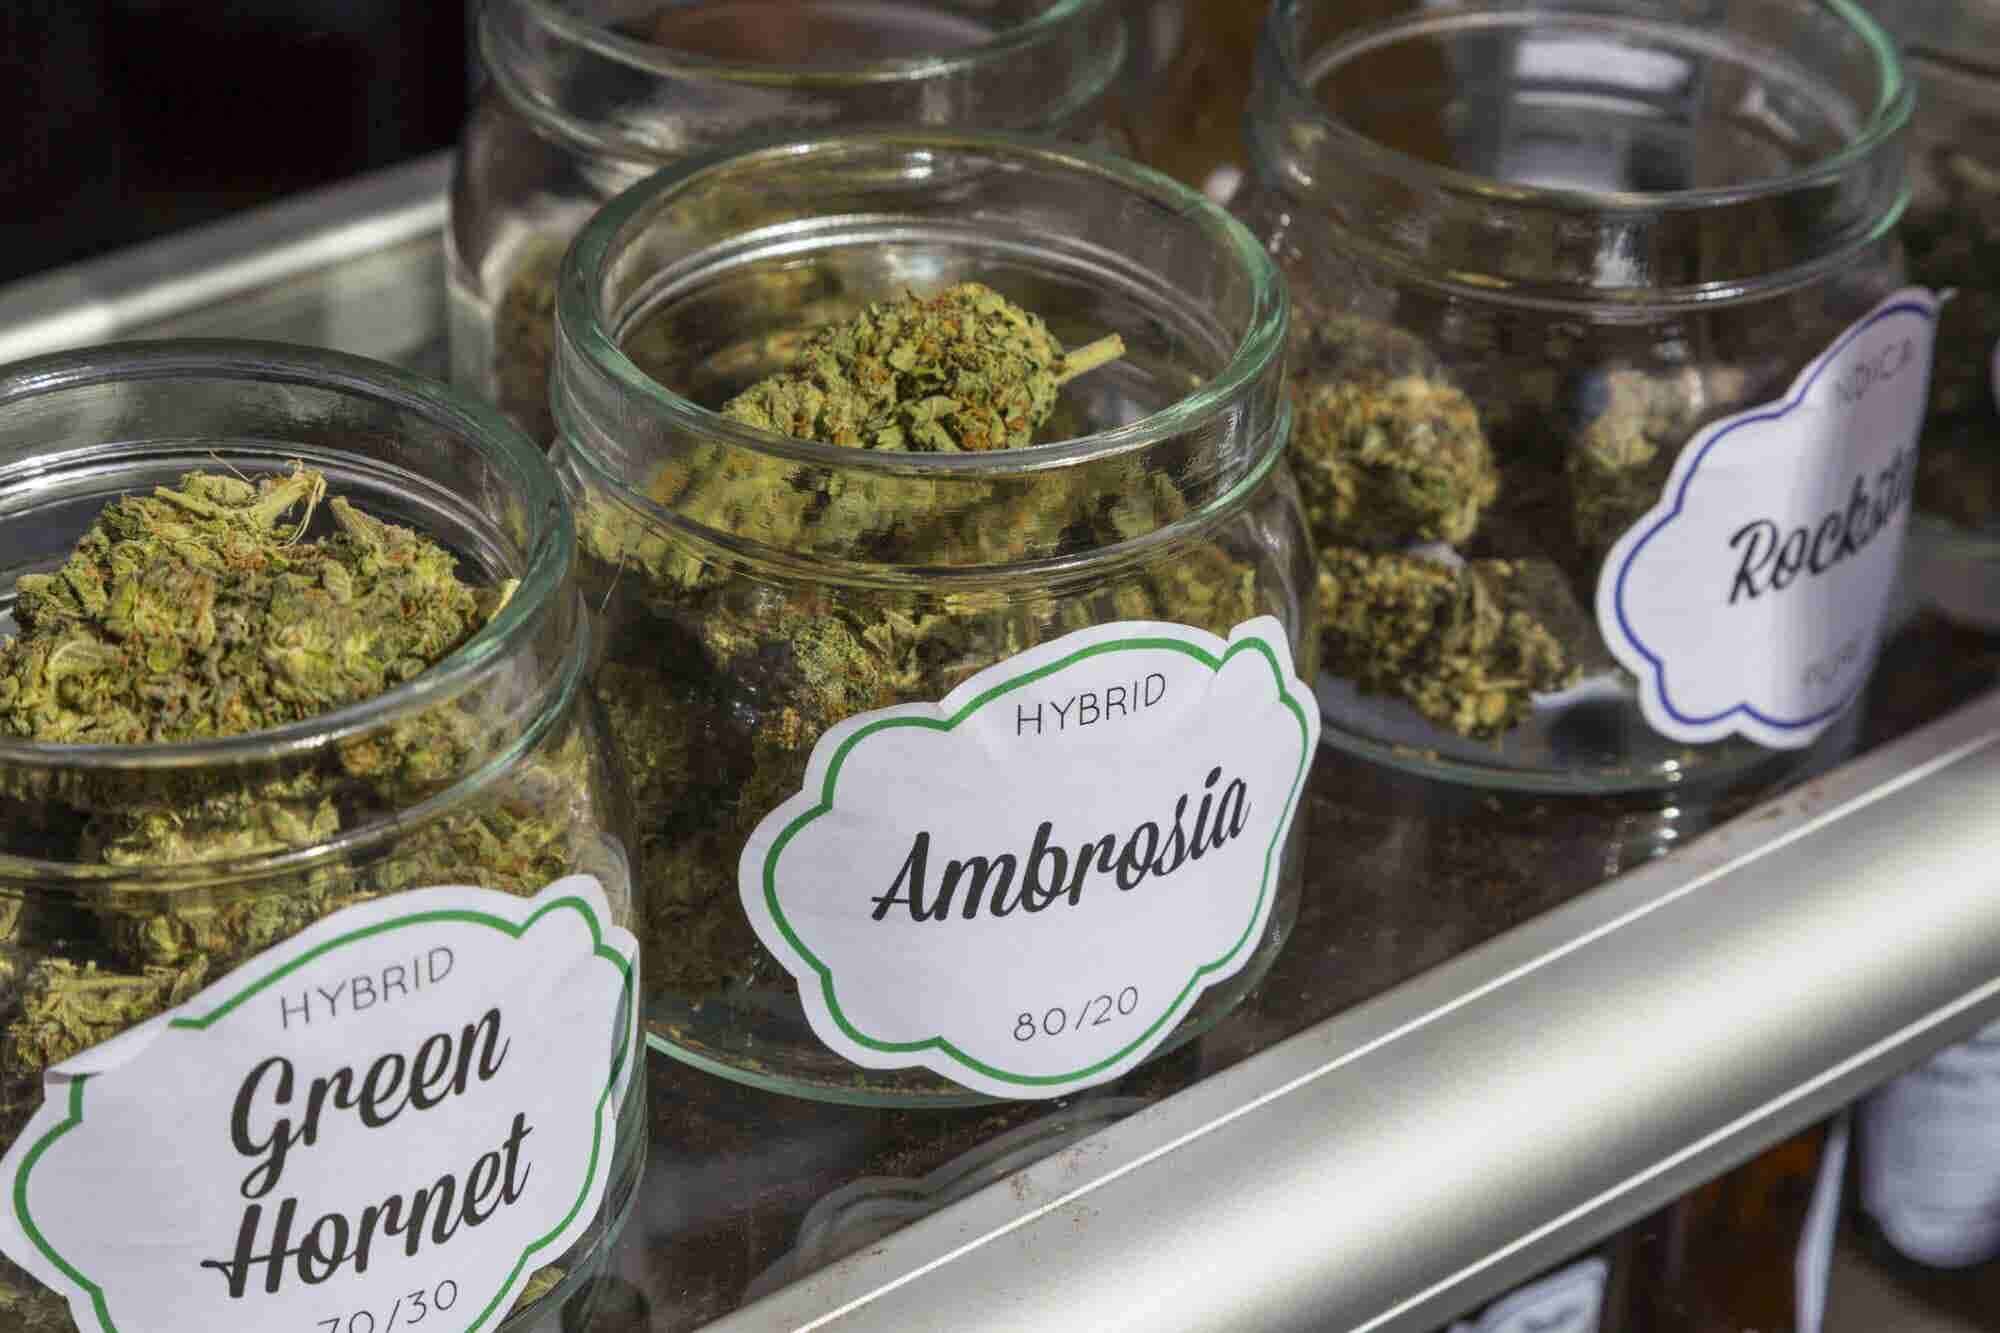 U.S. Cannabis Businesses Look Northward as Canada Opens a Vast Legal M...